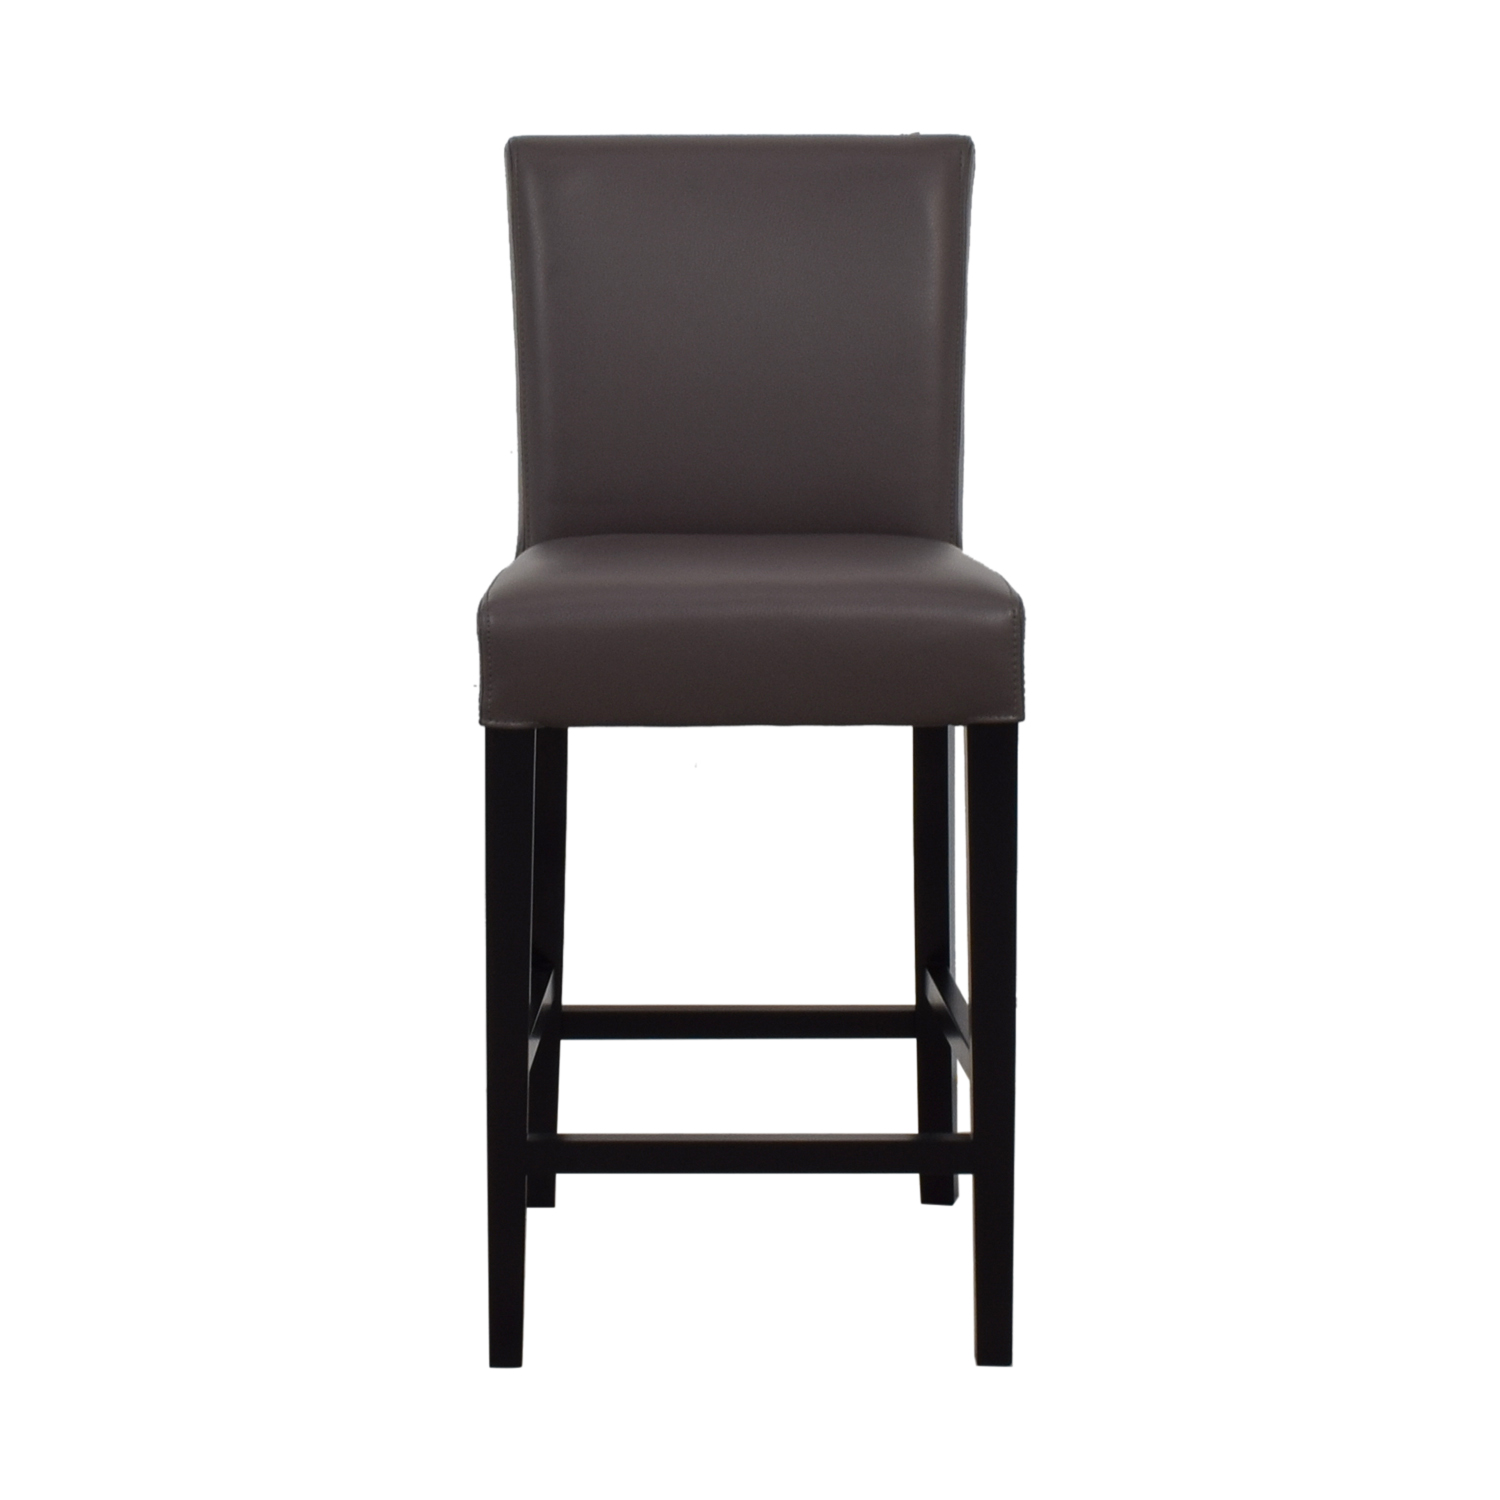 Crate & Barrel Crate & Barrel Lowe Leather Counter Stool